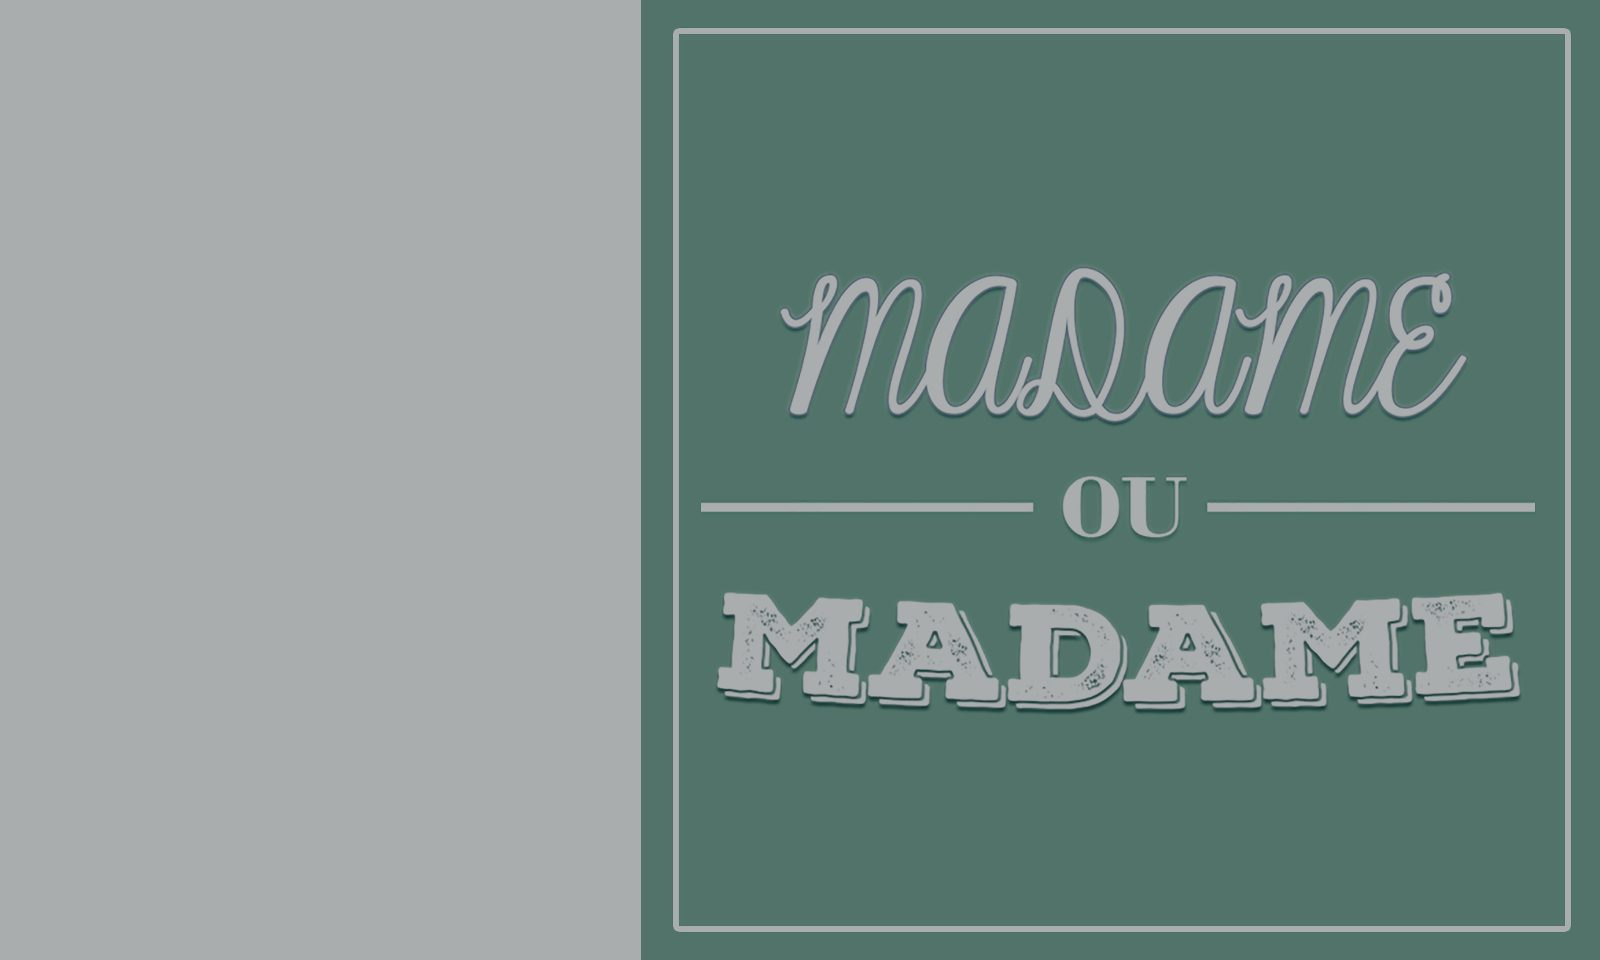 Archives 2017 - Madame ou Madame - L'émission de radio